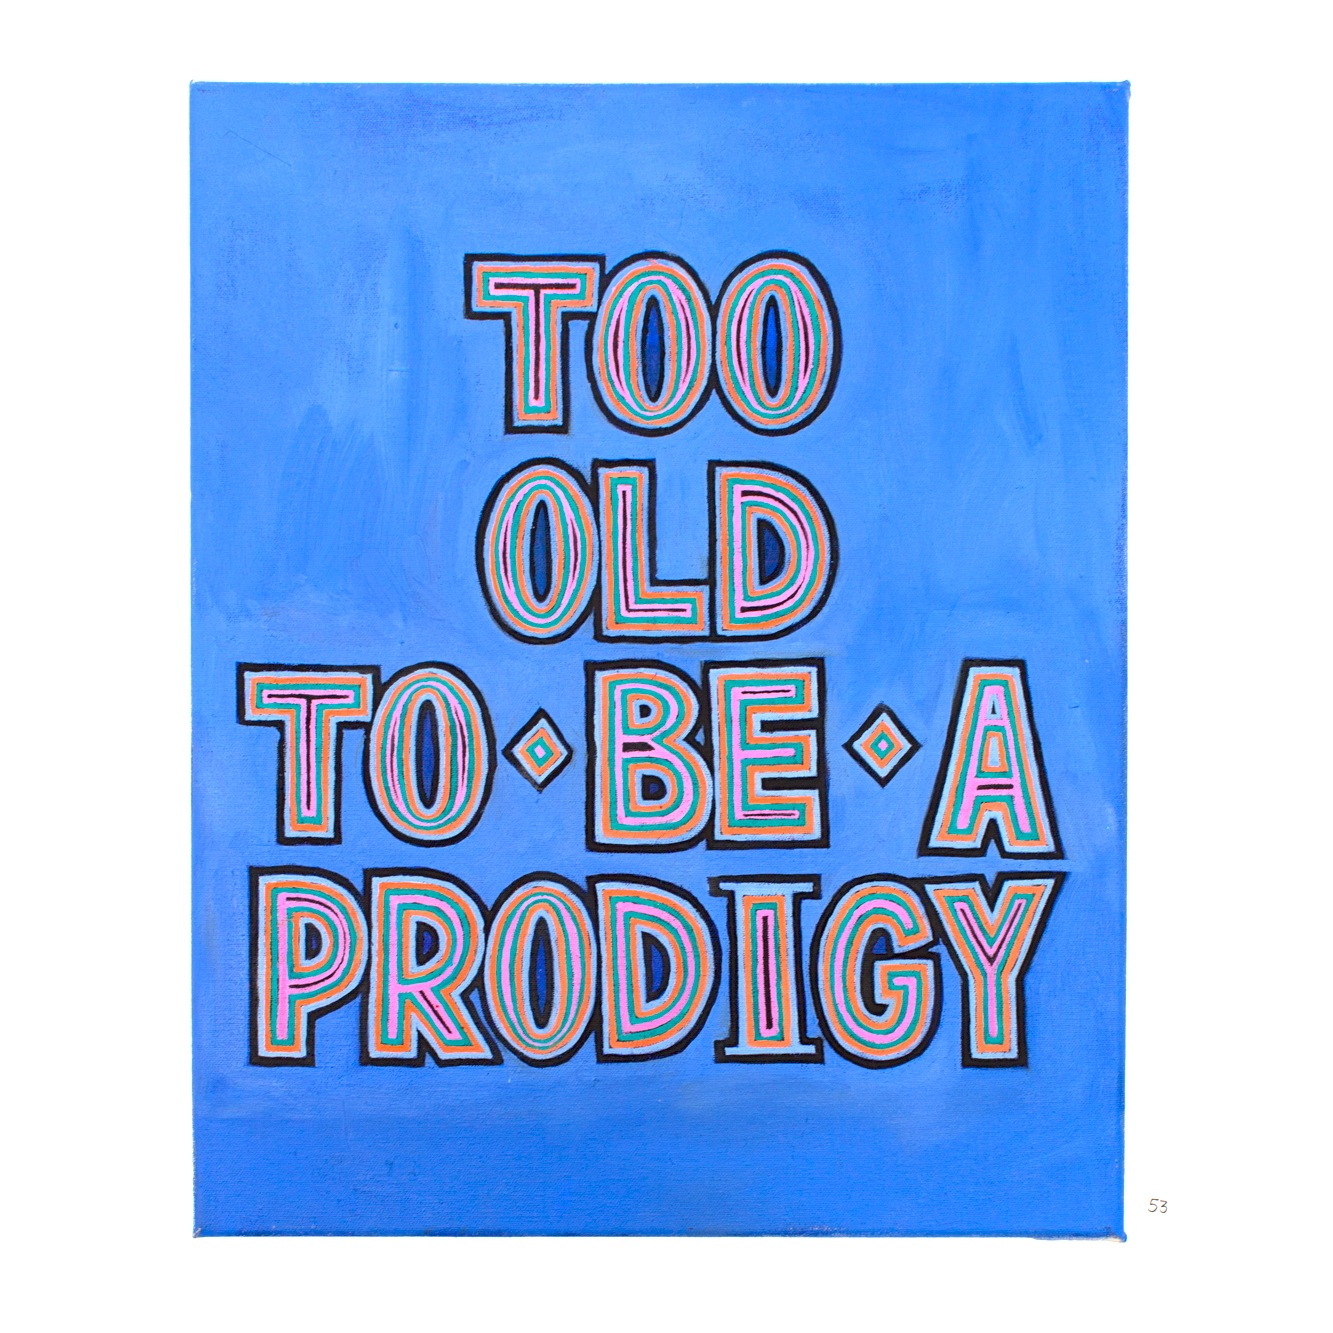 Too Old to be a Prodigy